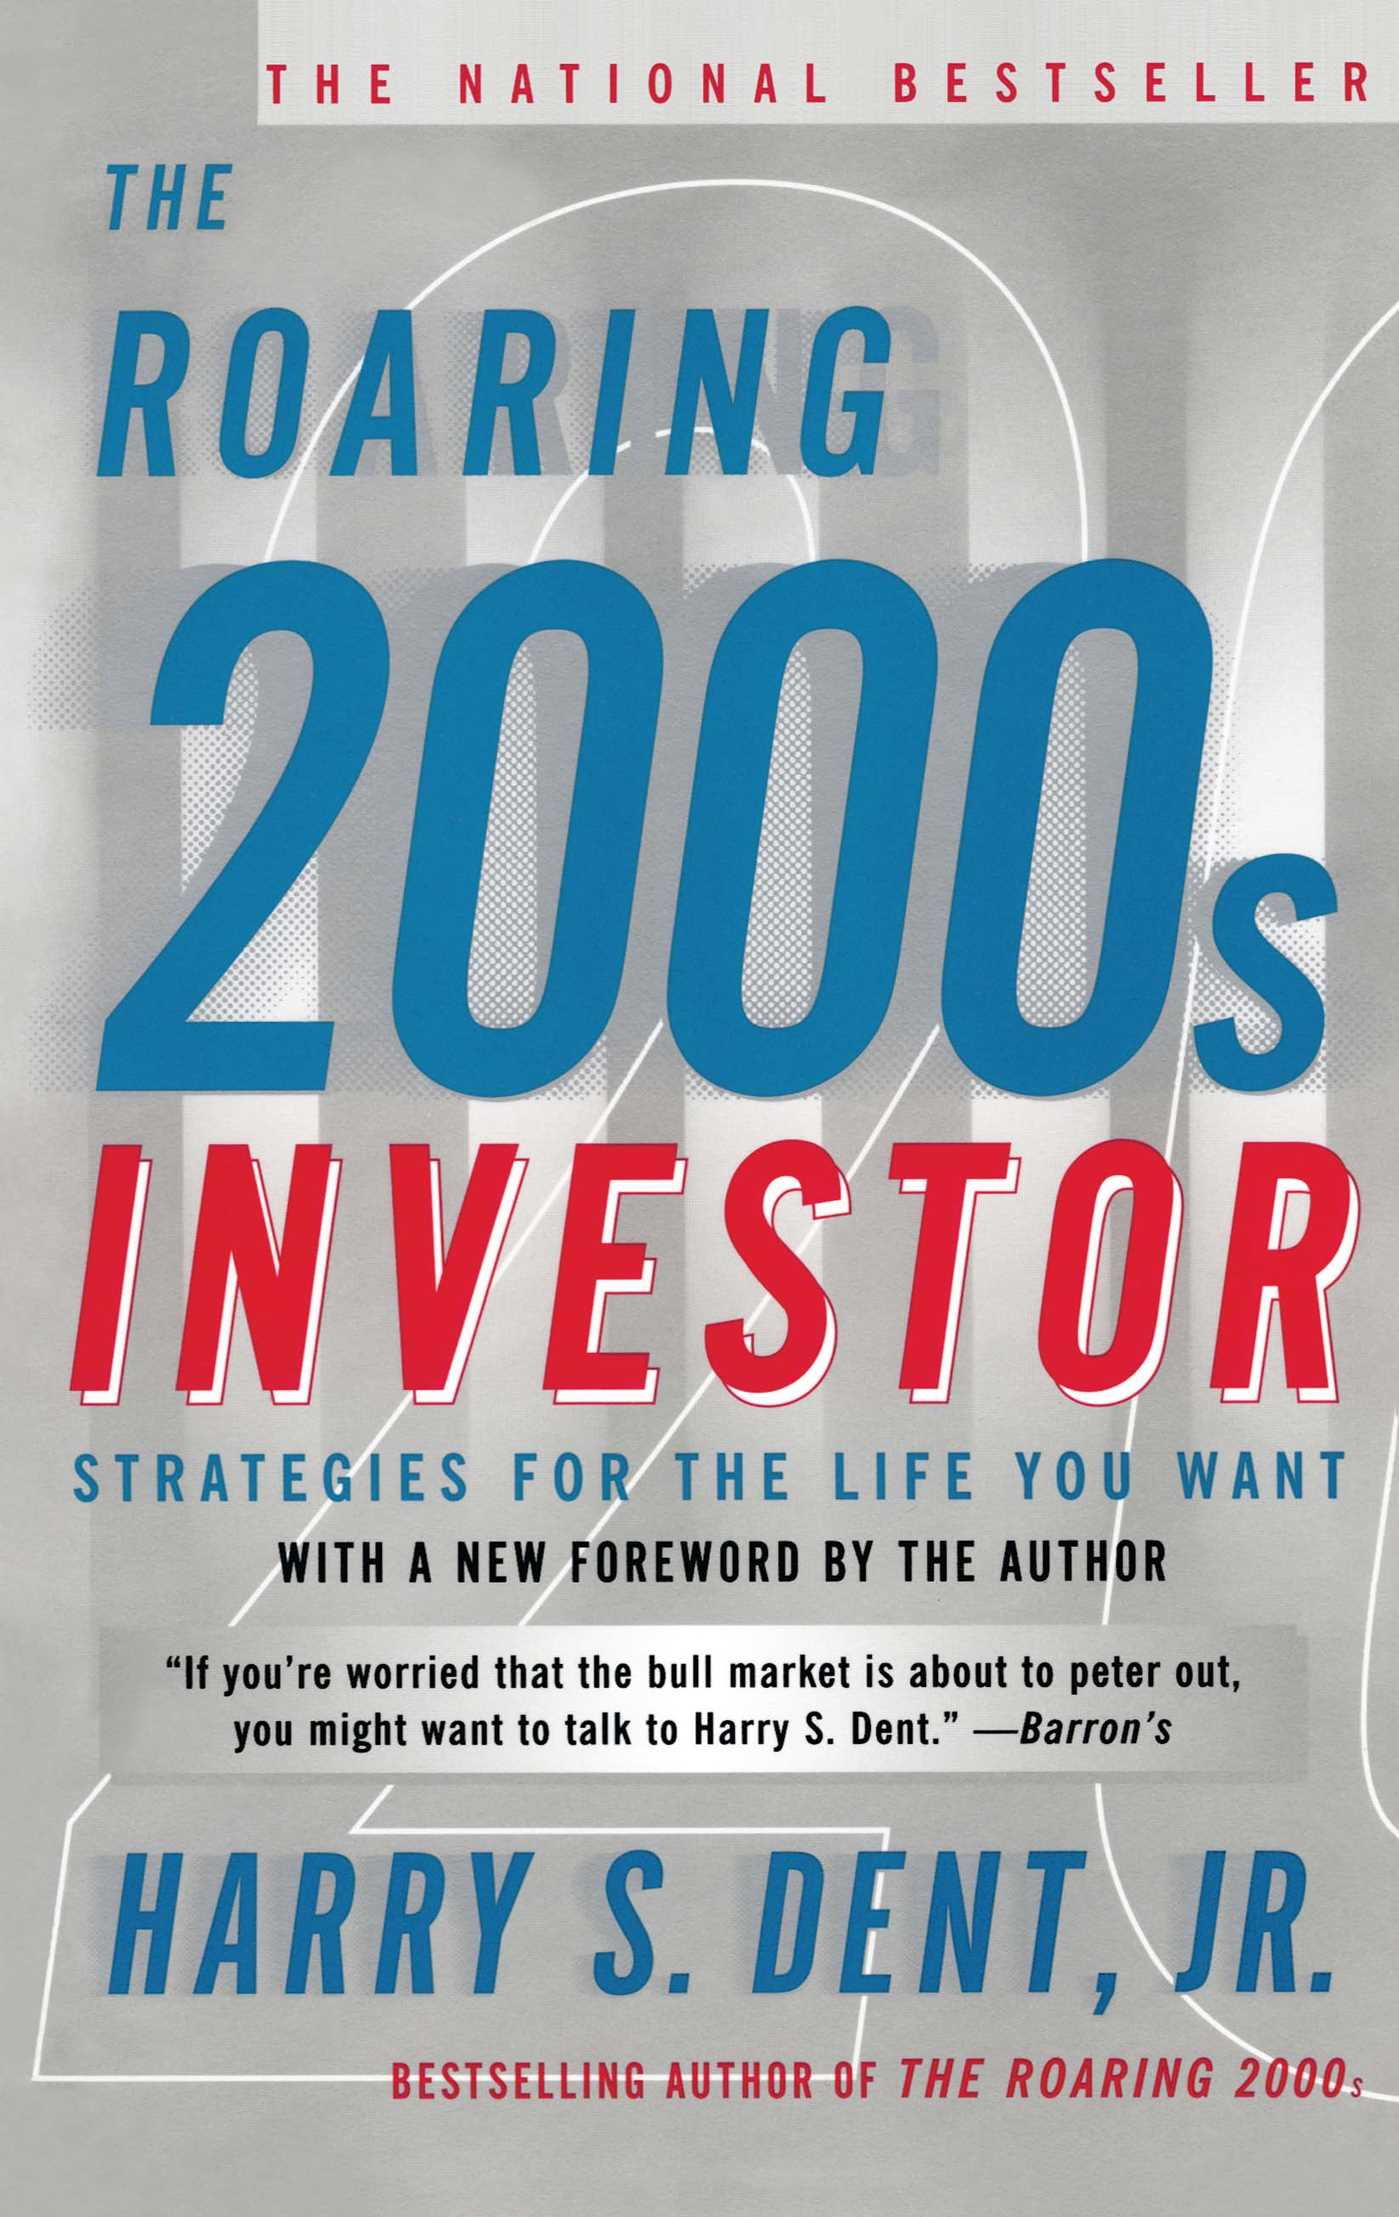 The Roaring 2000s Investor | Book by Harry S. Dent Jr. | Official ...